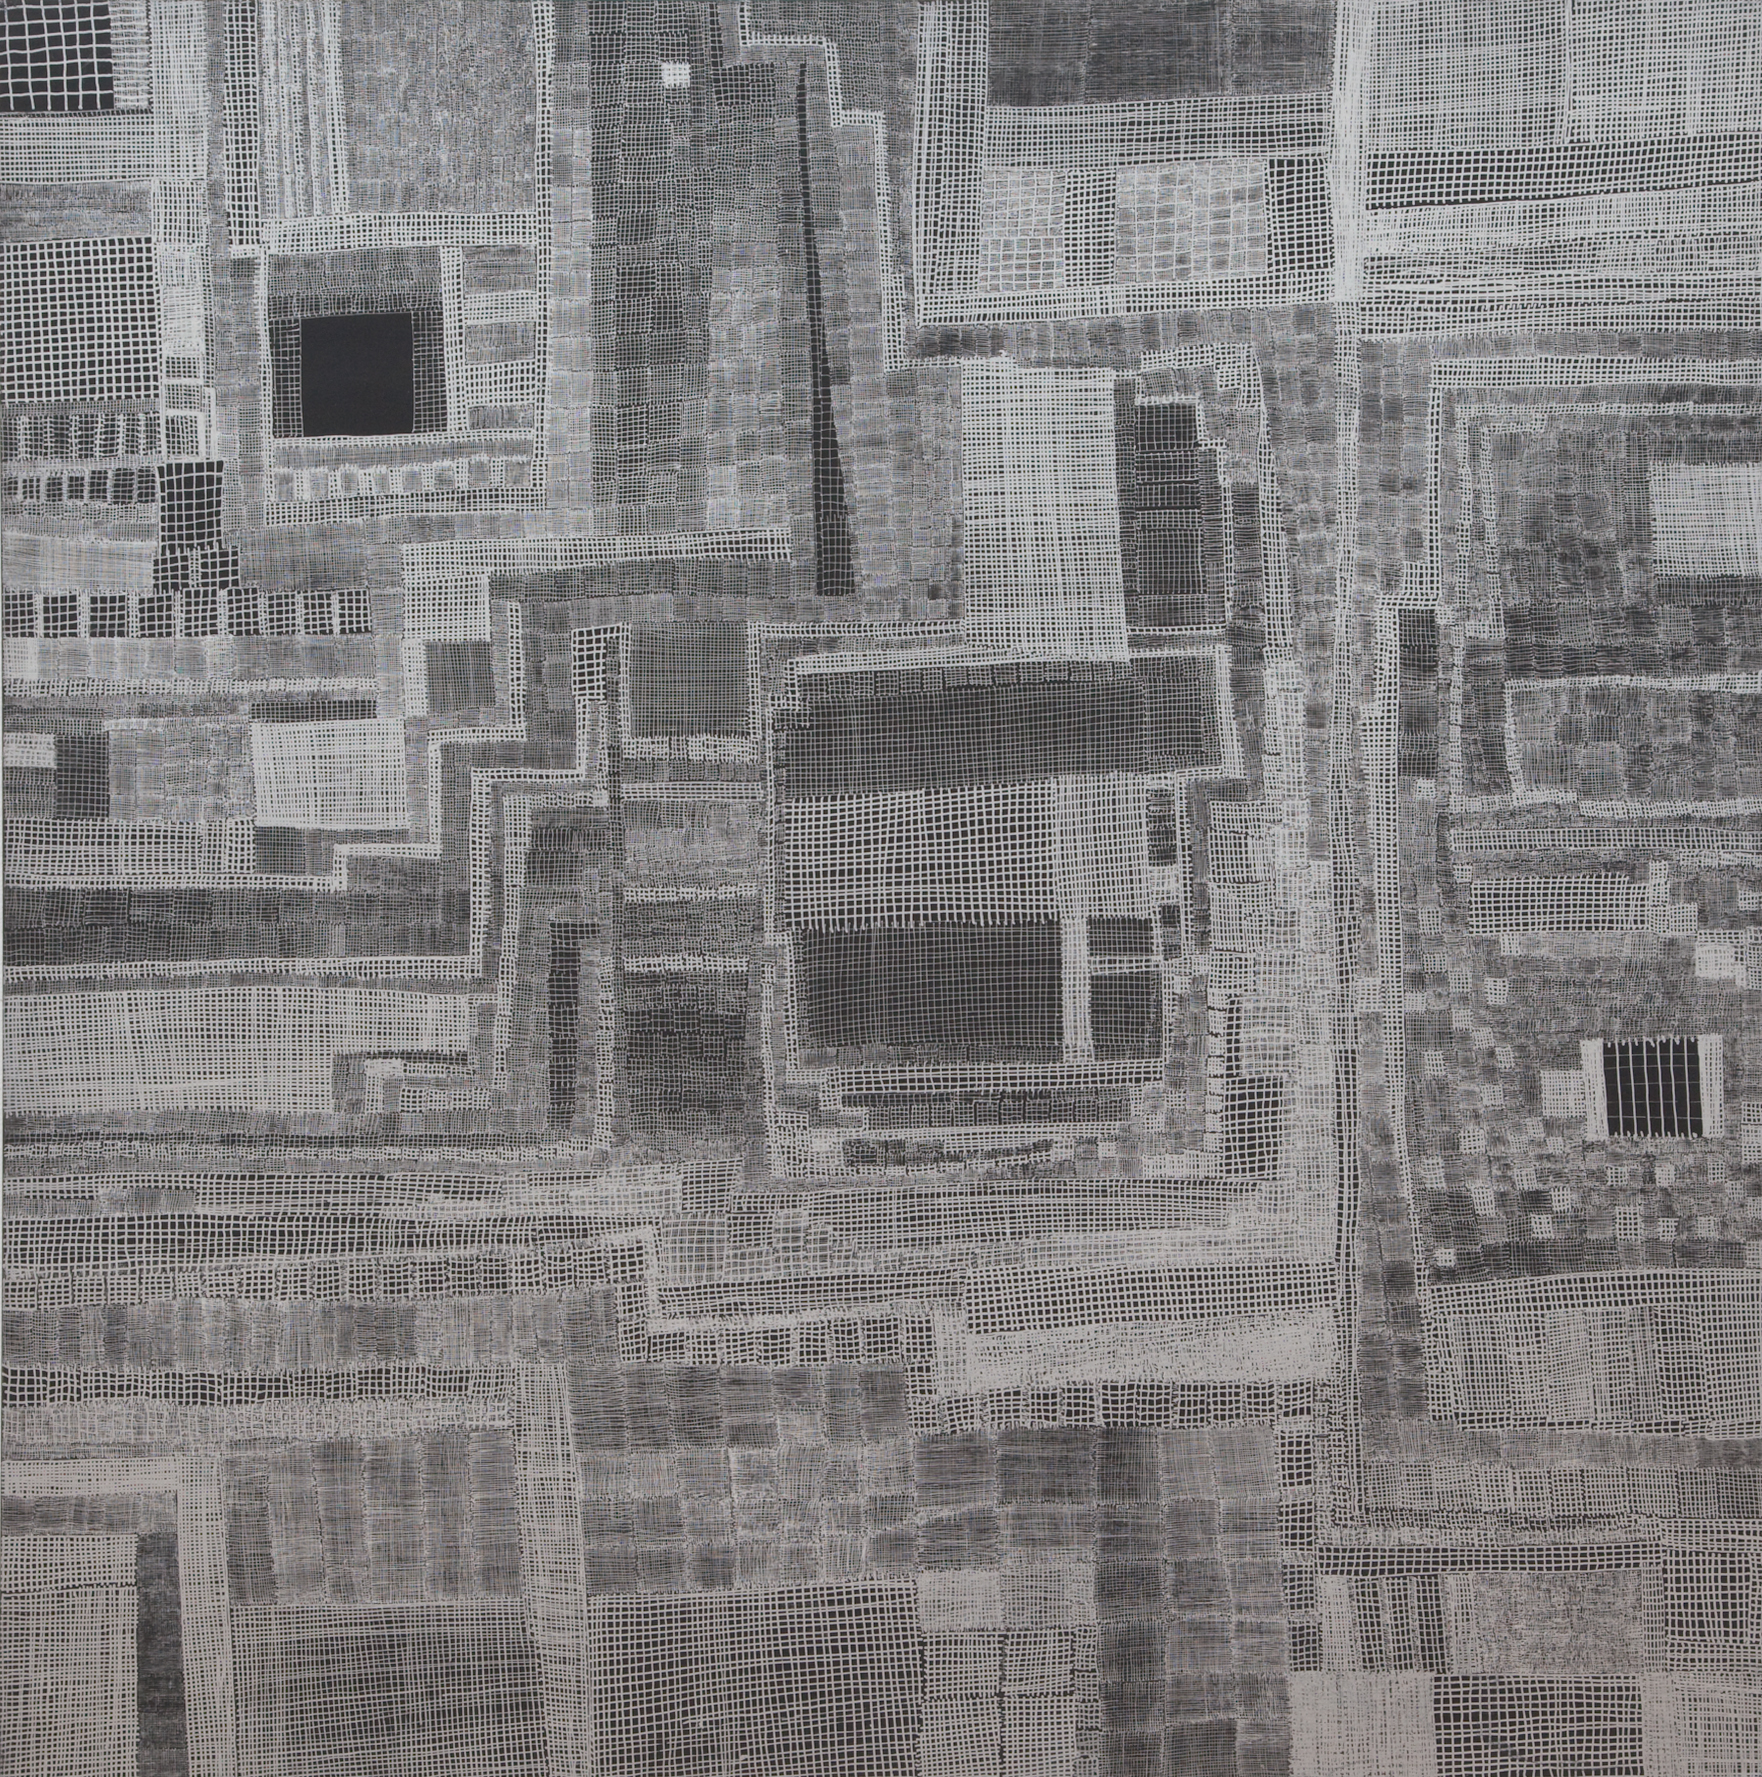 914_City Scapes_pen on panel_30 x 30_1999.jpg